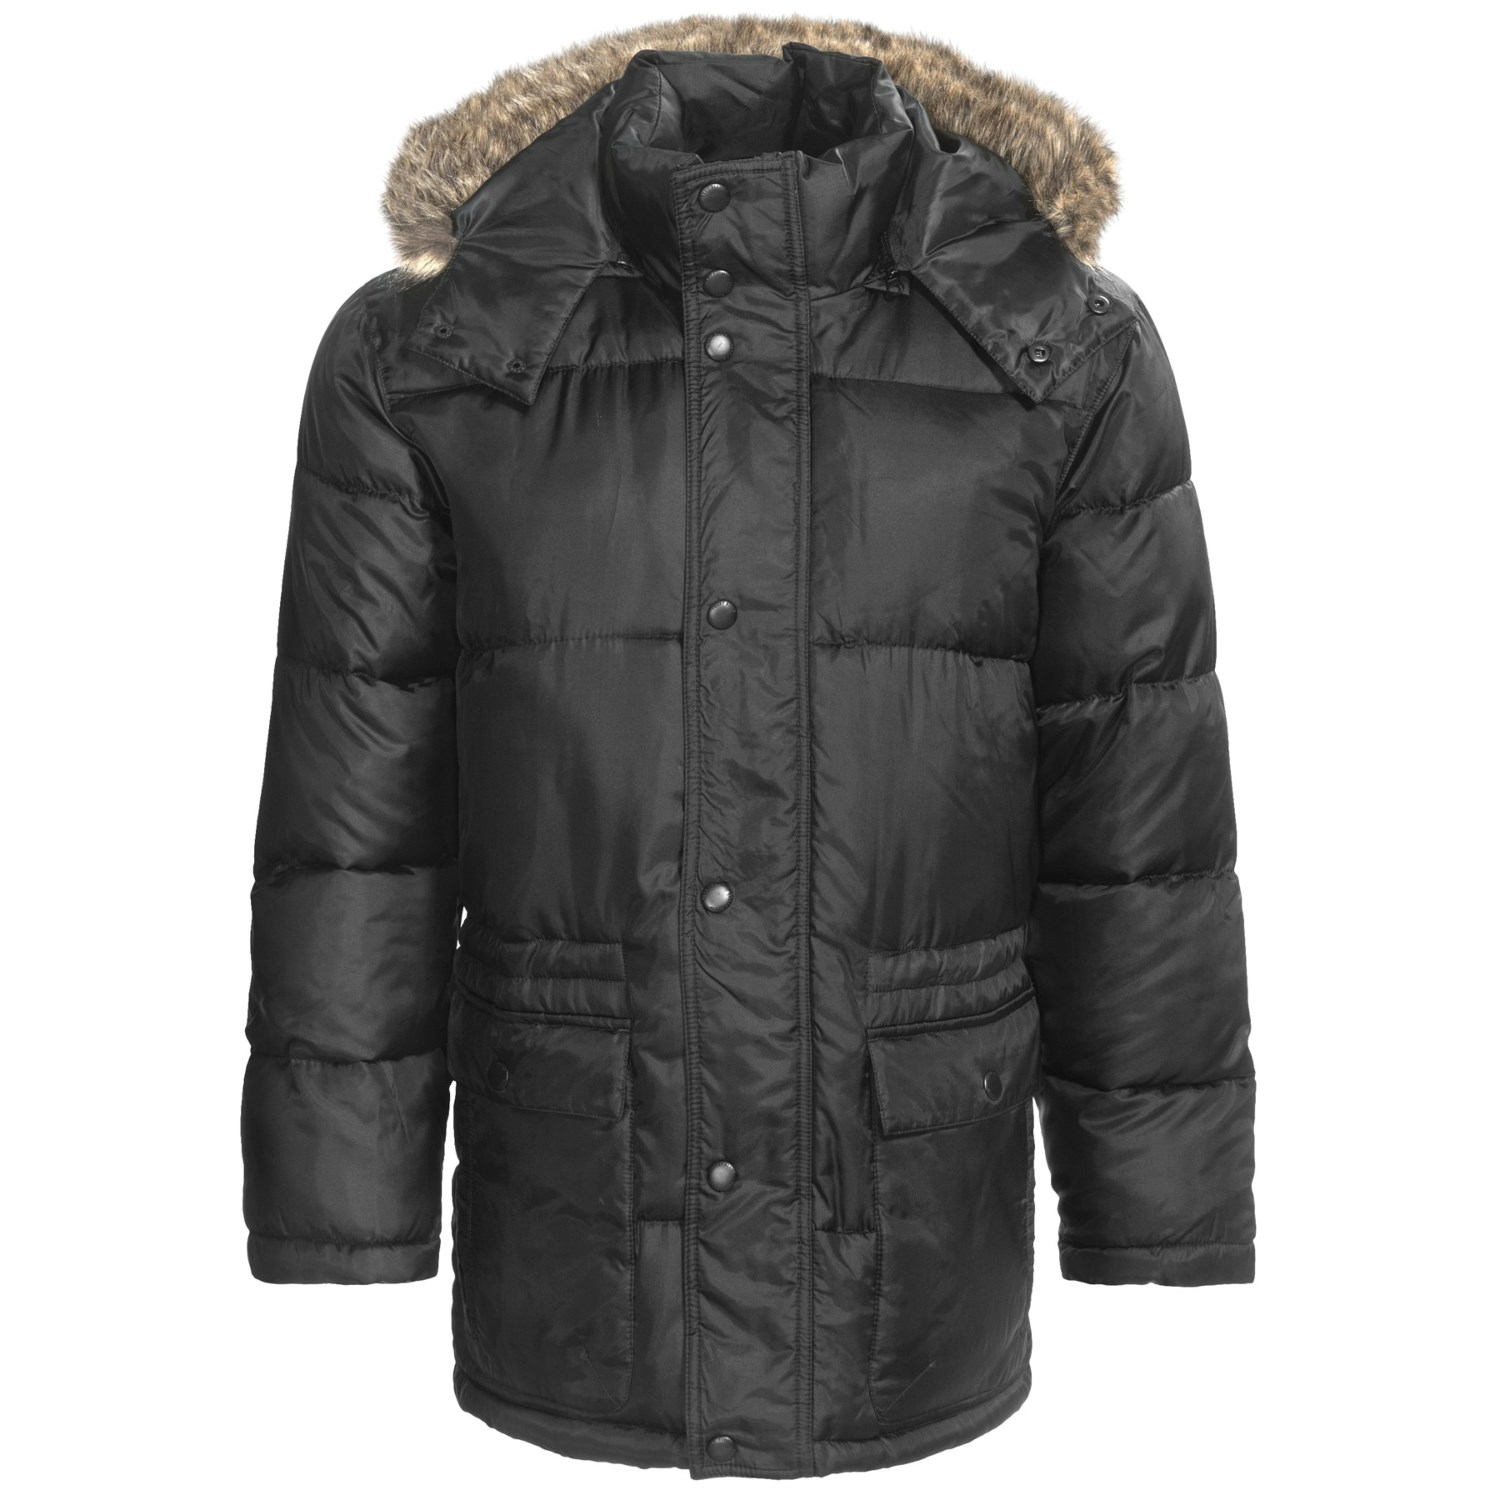 Schott Men's Snorkel Parka. Schott has, over time, perfected the leather jacket, and they've tried their hand at a number of stellar pieces in that same time. The Snorkel Parka is a somewhat unexpected but no less essential piece from a brand that makes some of the toughest outerwear around.